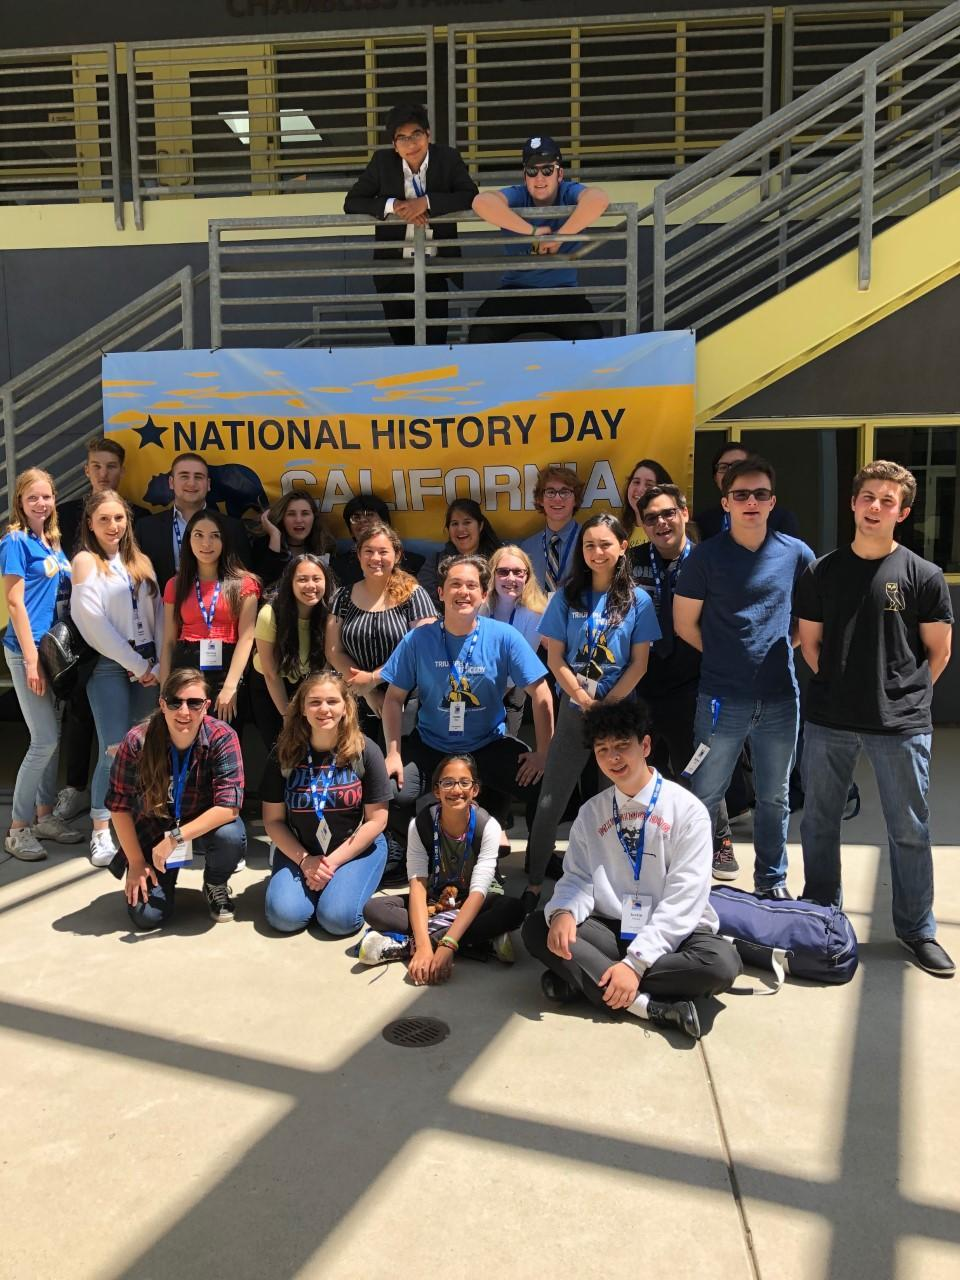 National History Day CA Group Photo